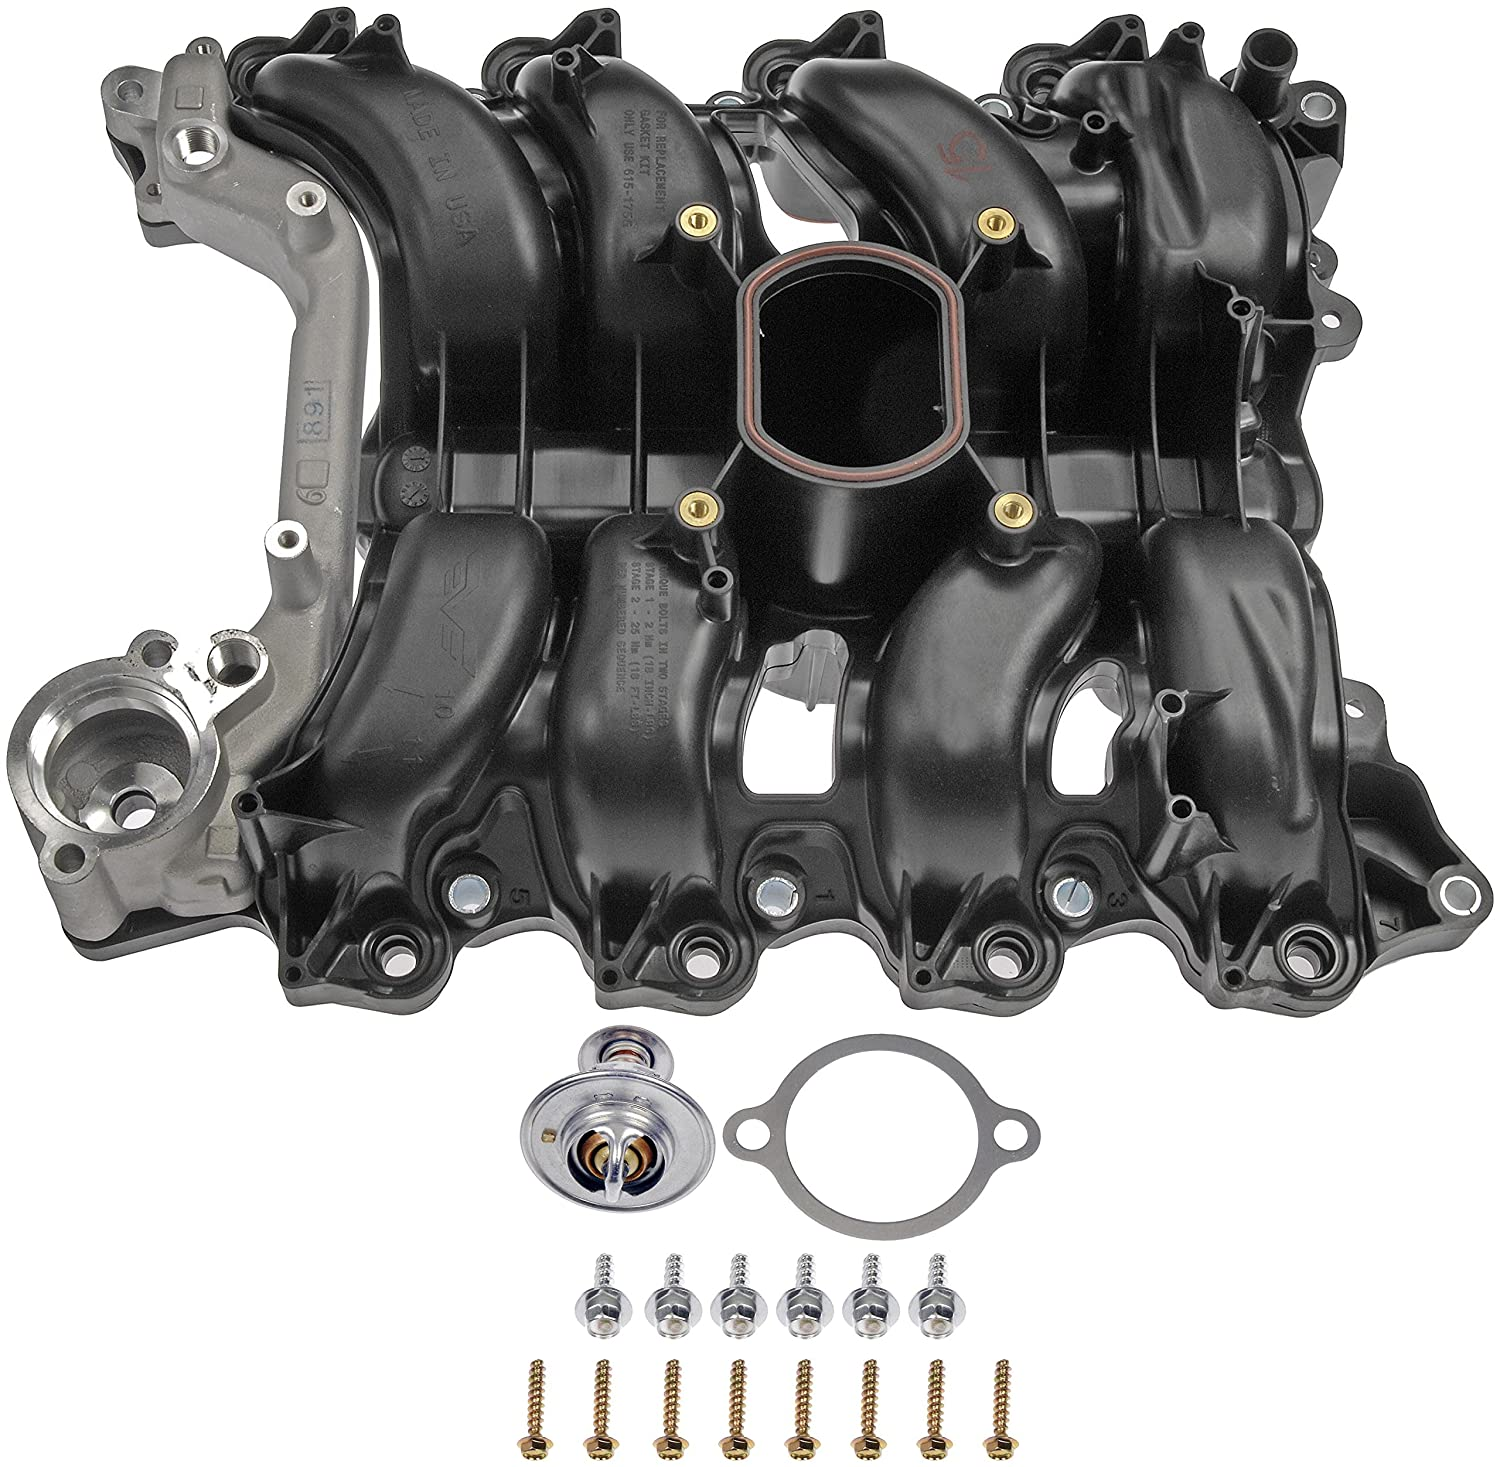 Dorman 615 178 Upper Intake Manifold For Select Ford 1997 Mercury Grand Marquis Radio Wiring Diagram Lincoln Models Automotive